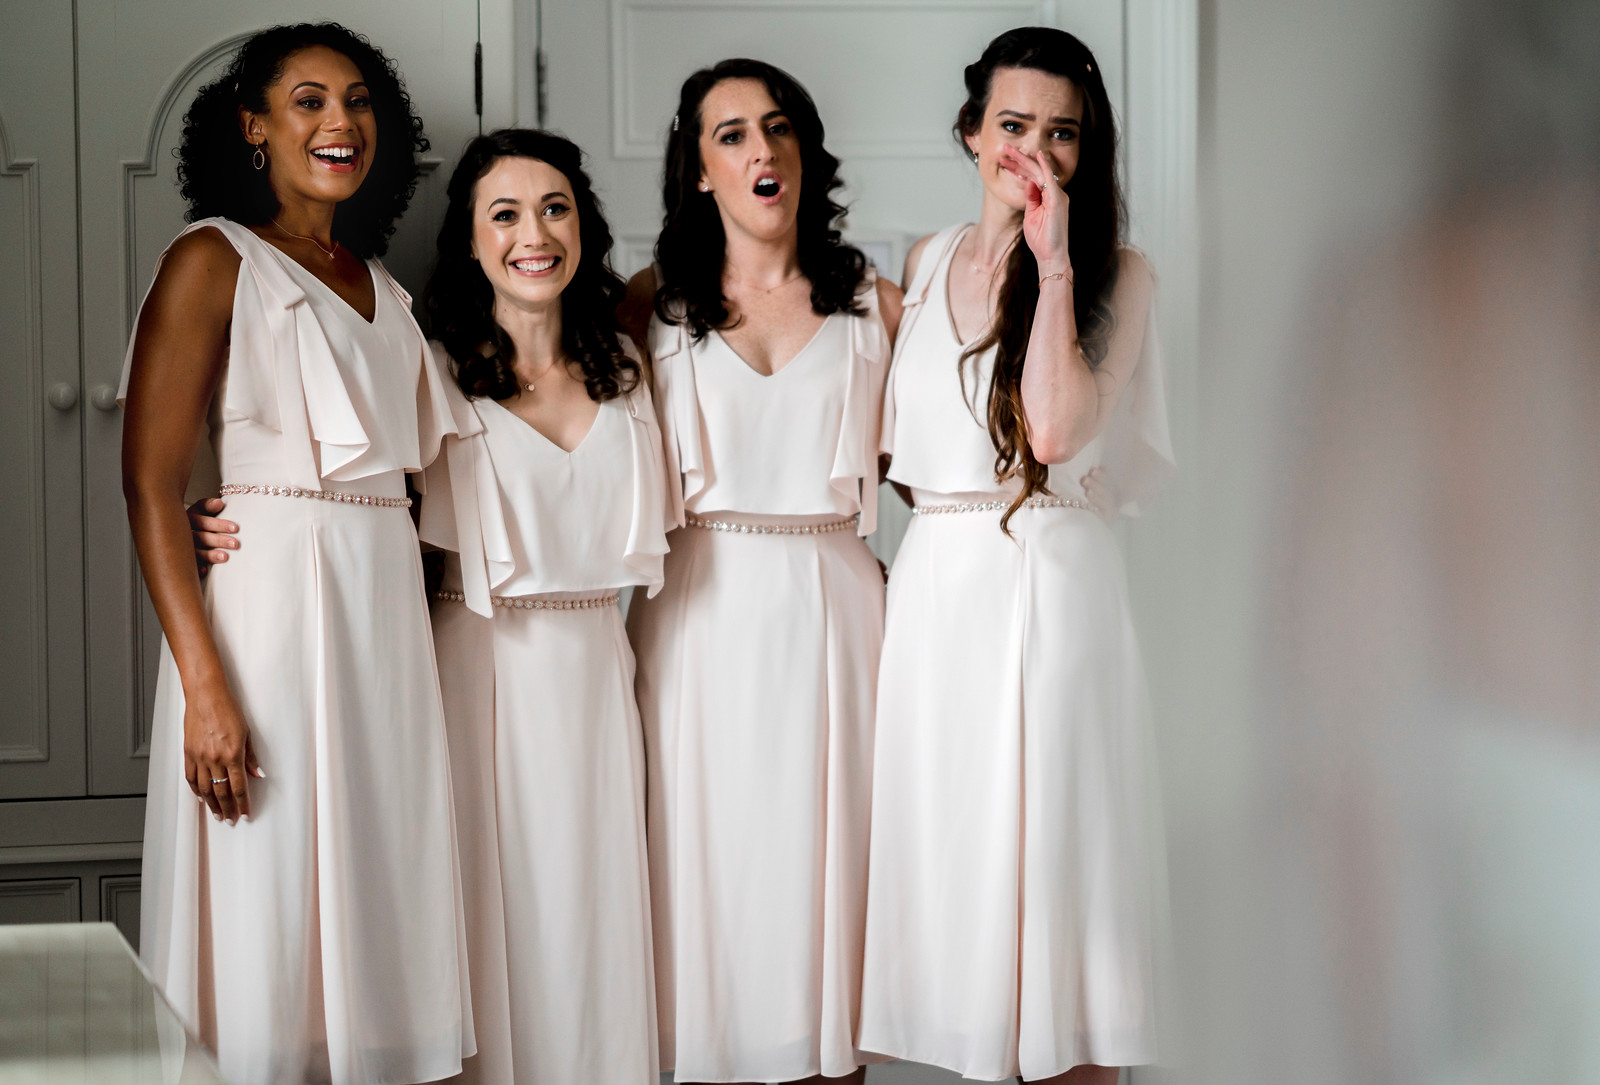 Bridesmaids reaction to seeing the brides dress for the first time